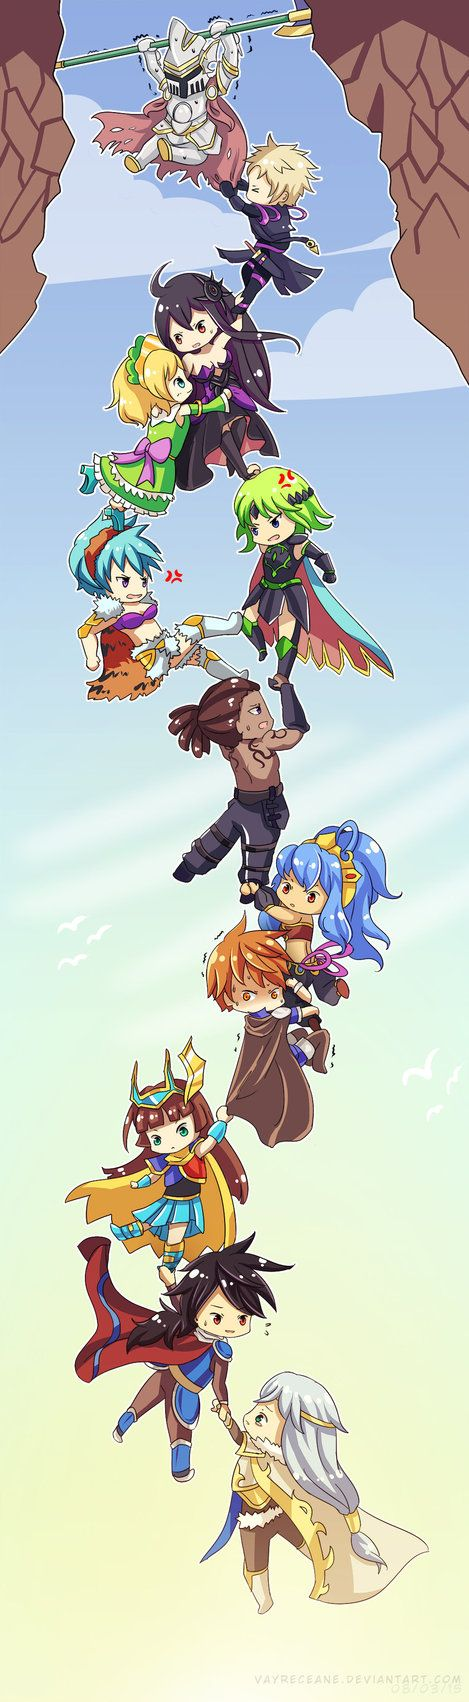 Brave Frontier 12 guardians of the gods - Hold On! by Vayreceane